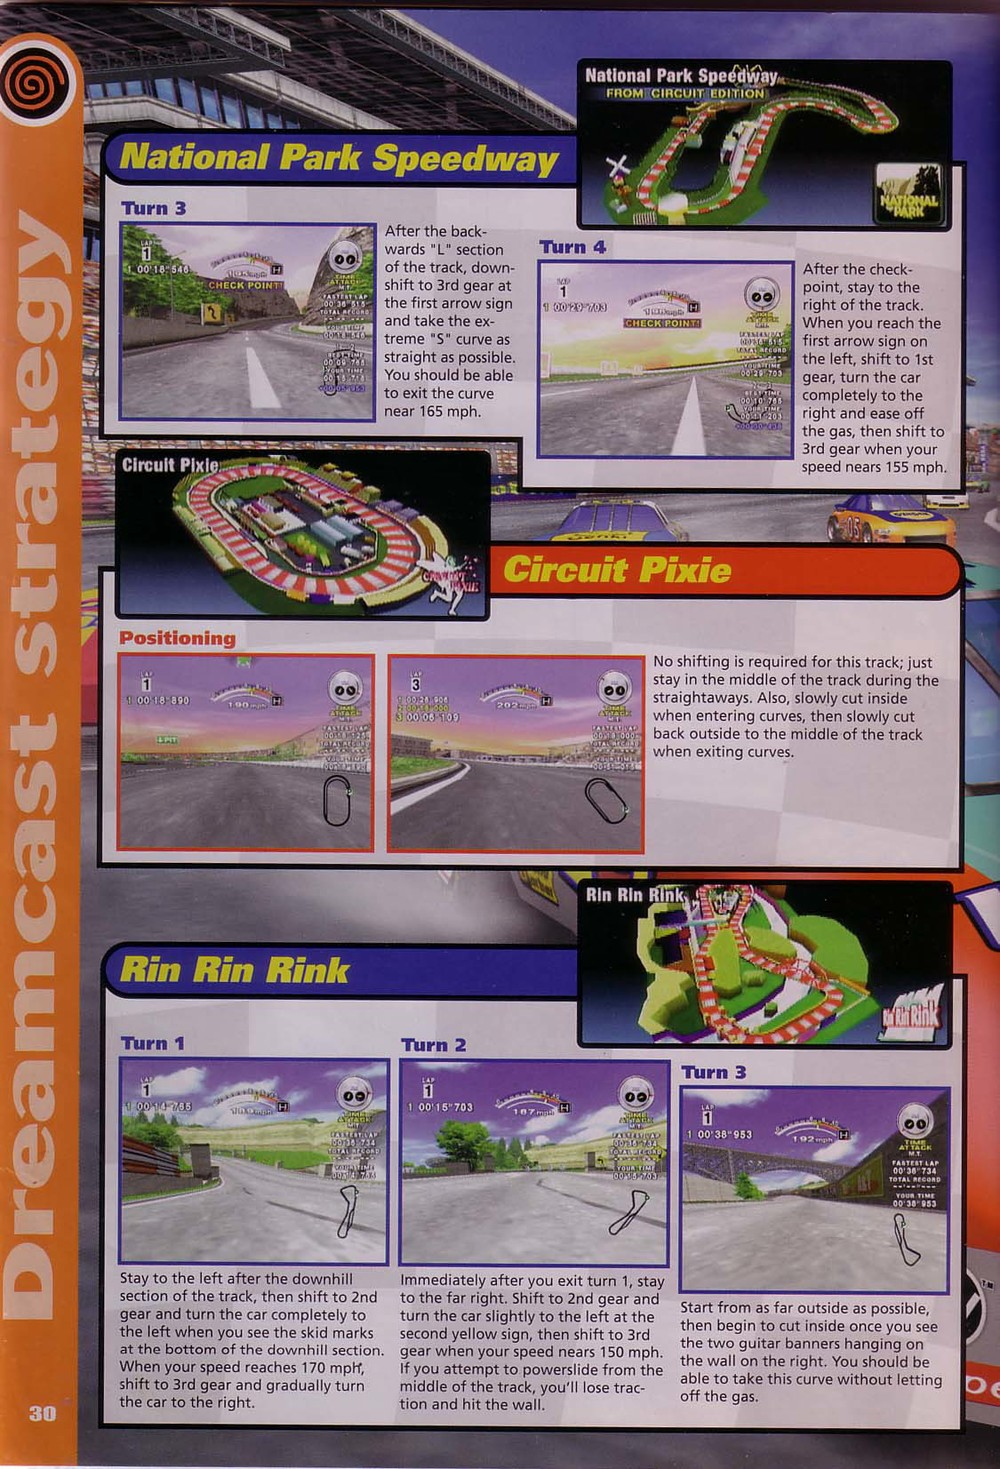 TipsandTricks_May_2001_Daytona_USA_pg5_Strategy.jpg